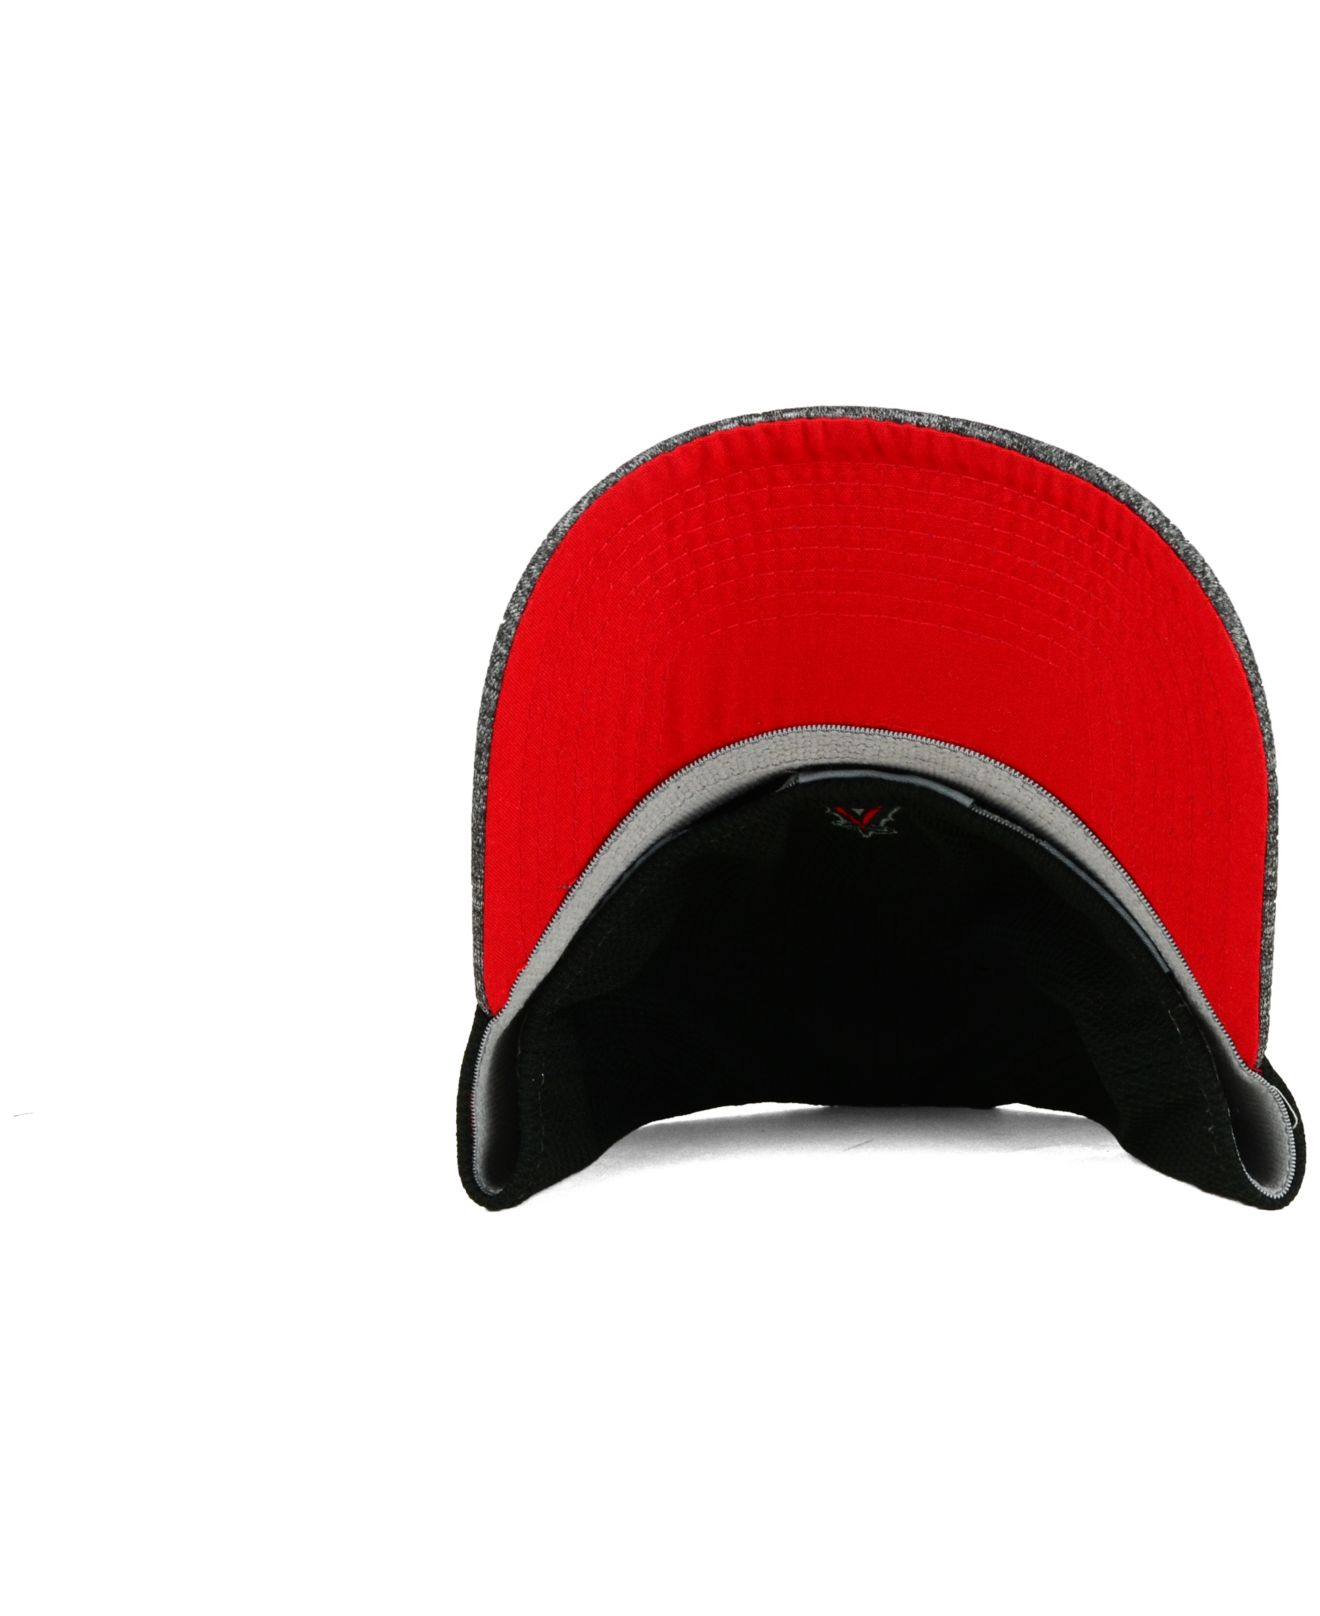 new products 3ac70 eeb39 ... discount lyst ktz los angeles angels of anaheim tech fuse 39thirty cap  in c5cca 1f483